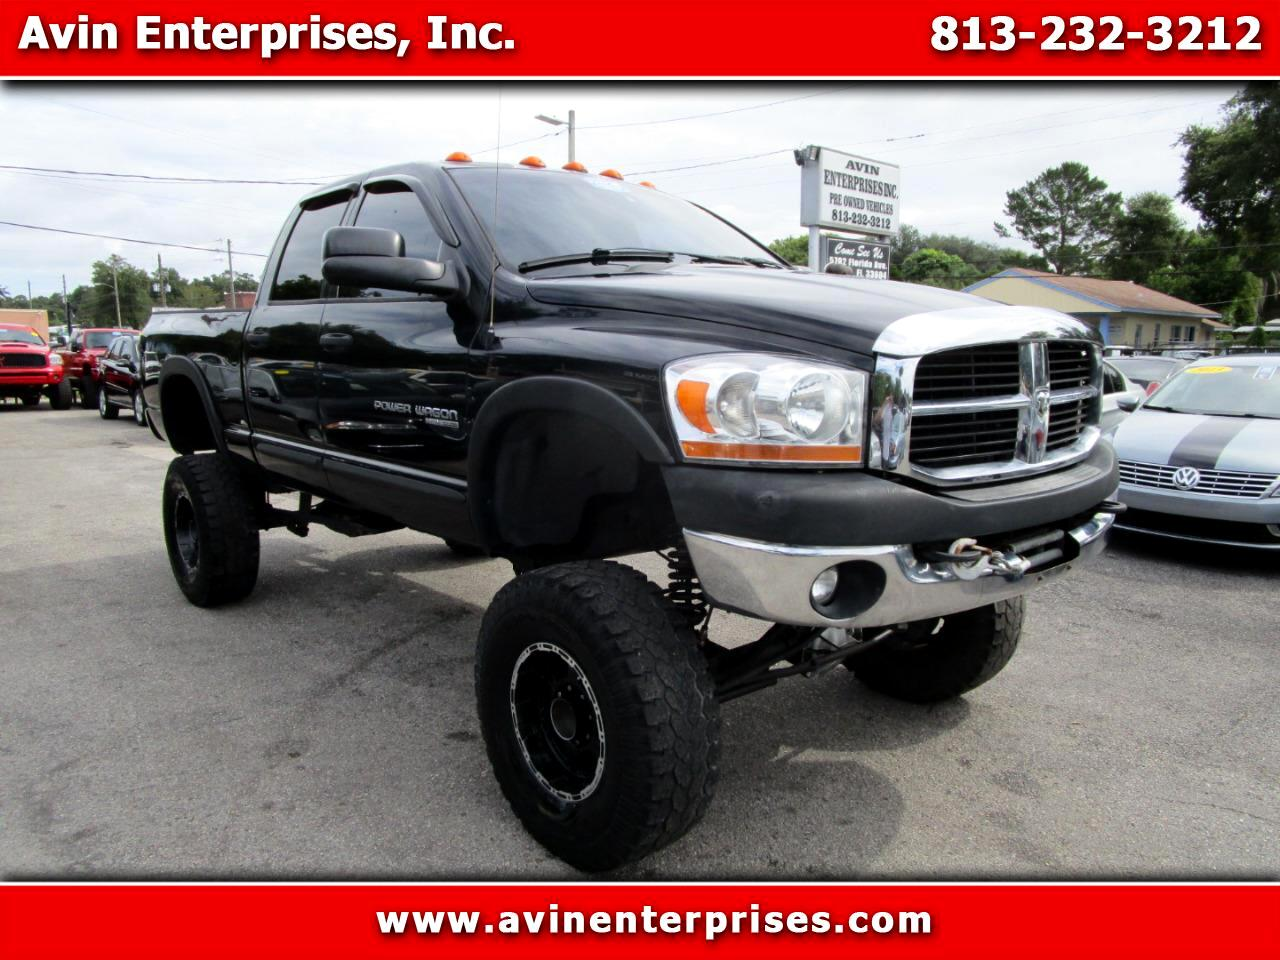 2006 Dodge Ram 2500 Power Wagon Quad Cab 4WD